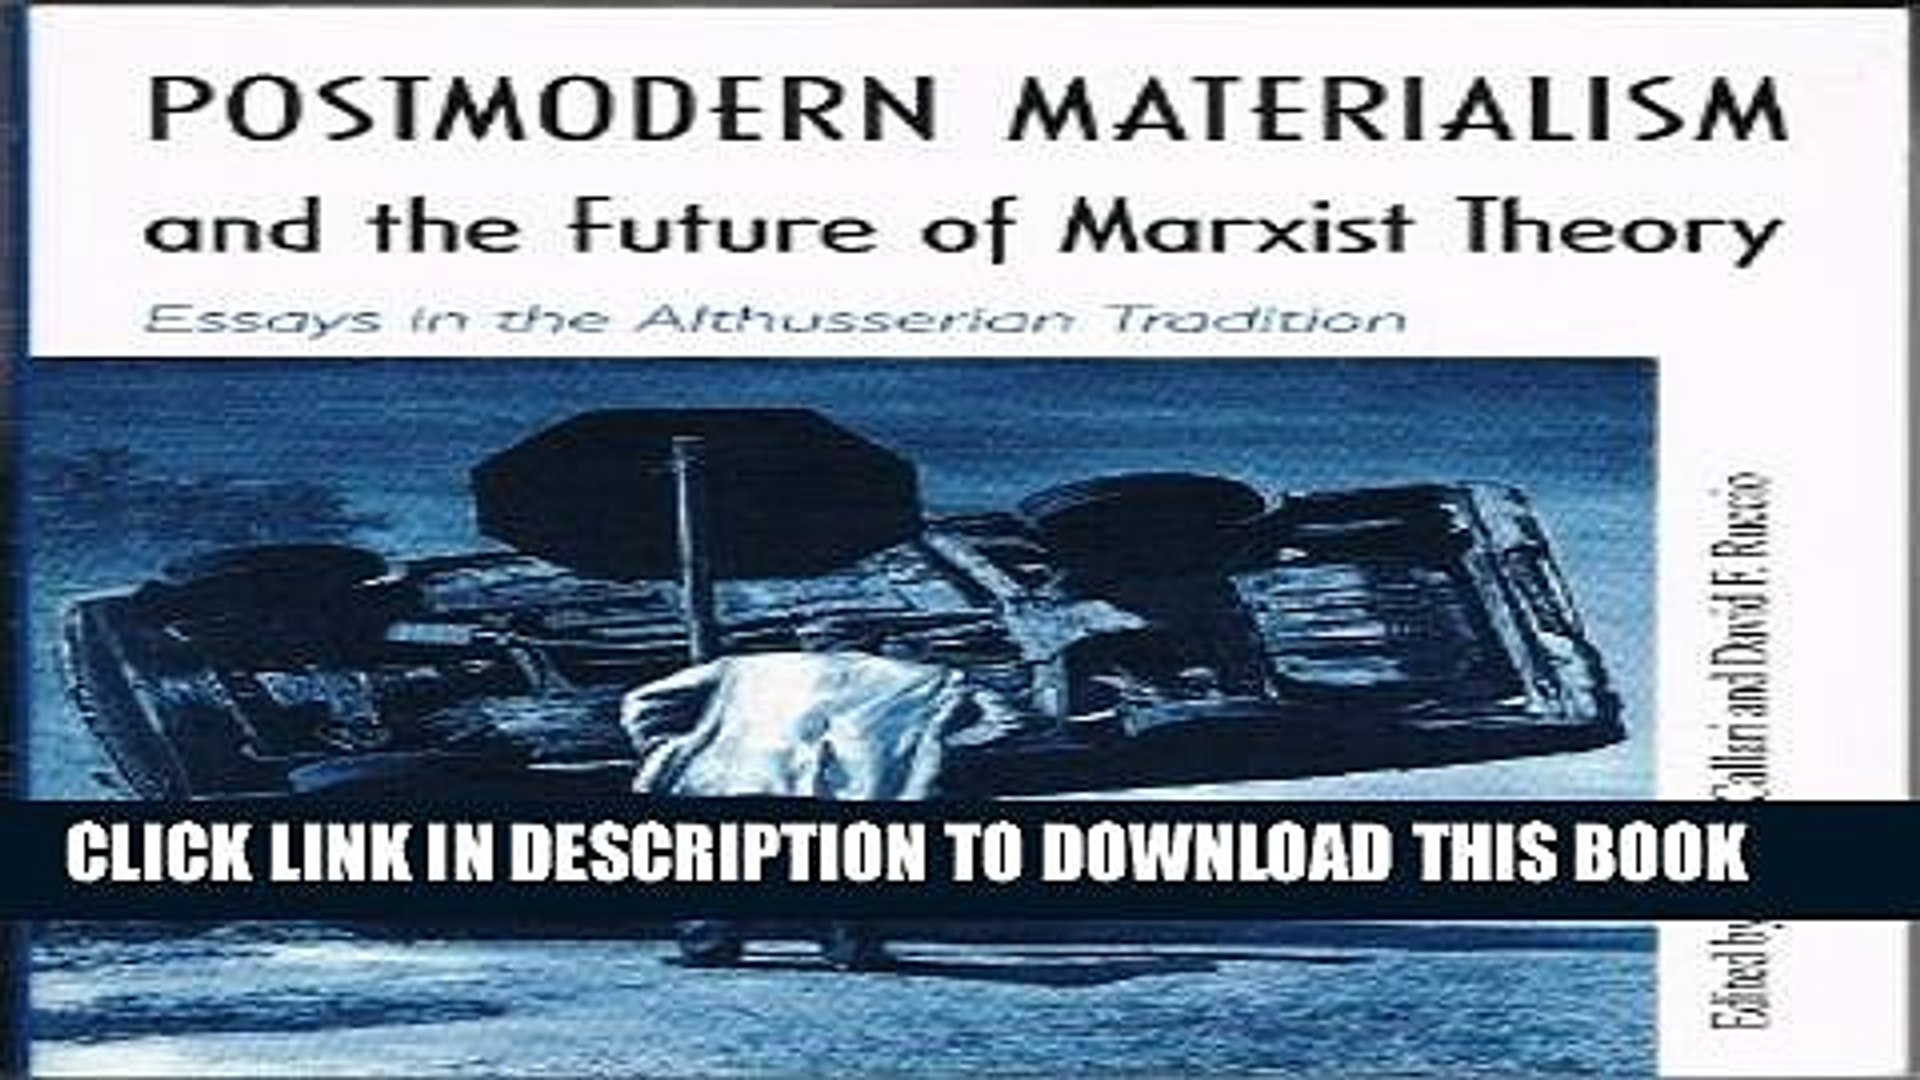 Postmodern Materialism and the Future of Marxist Theory Essays in the Althusserian Tradition